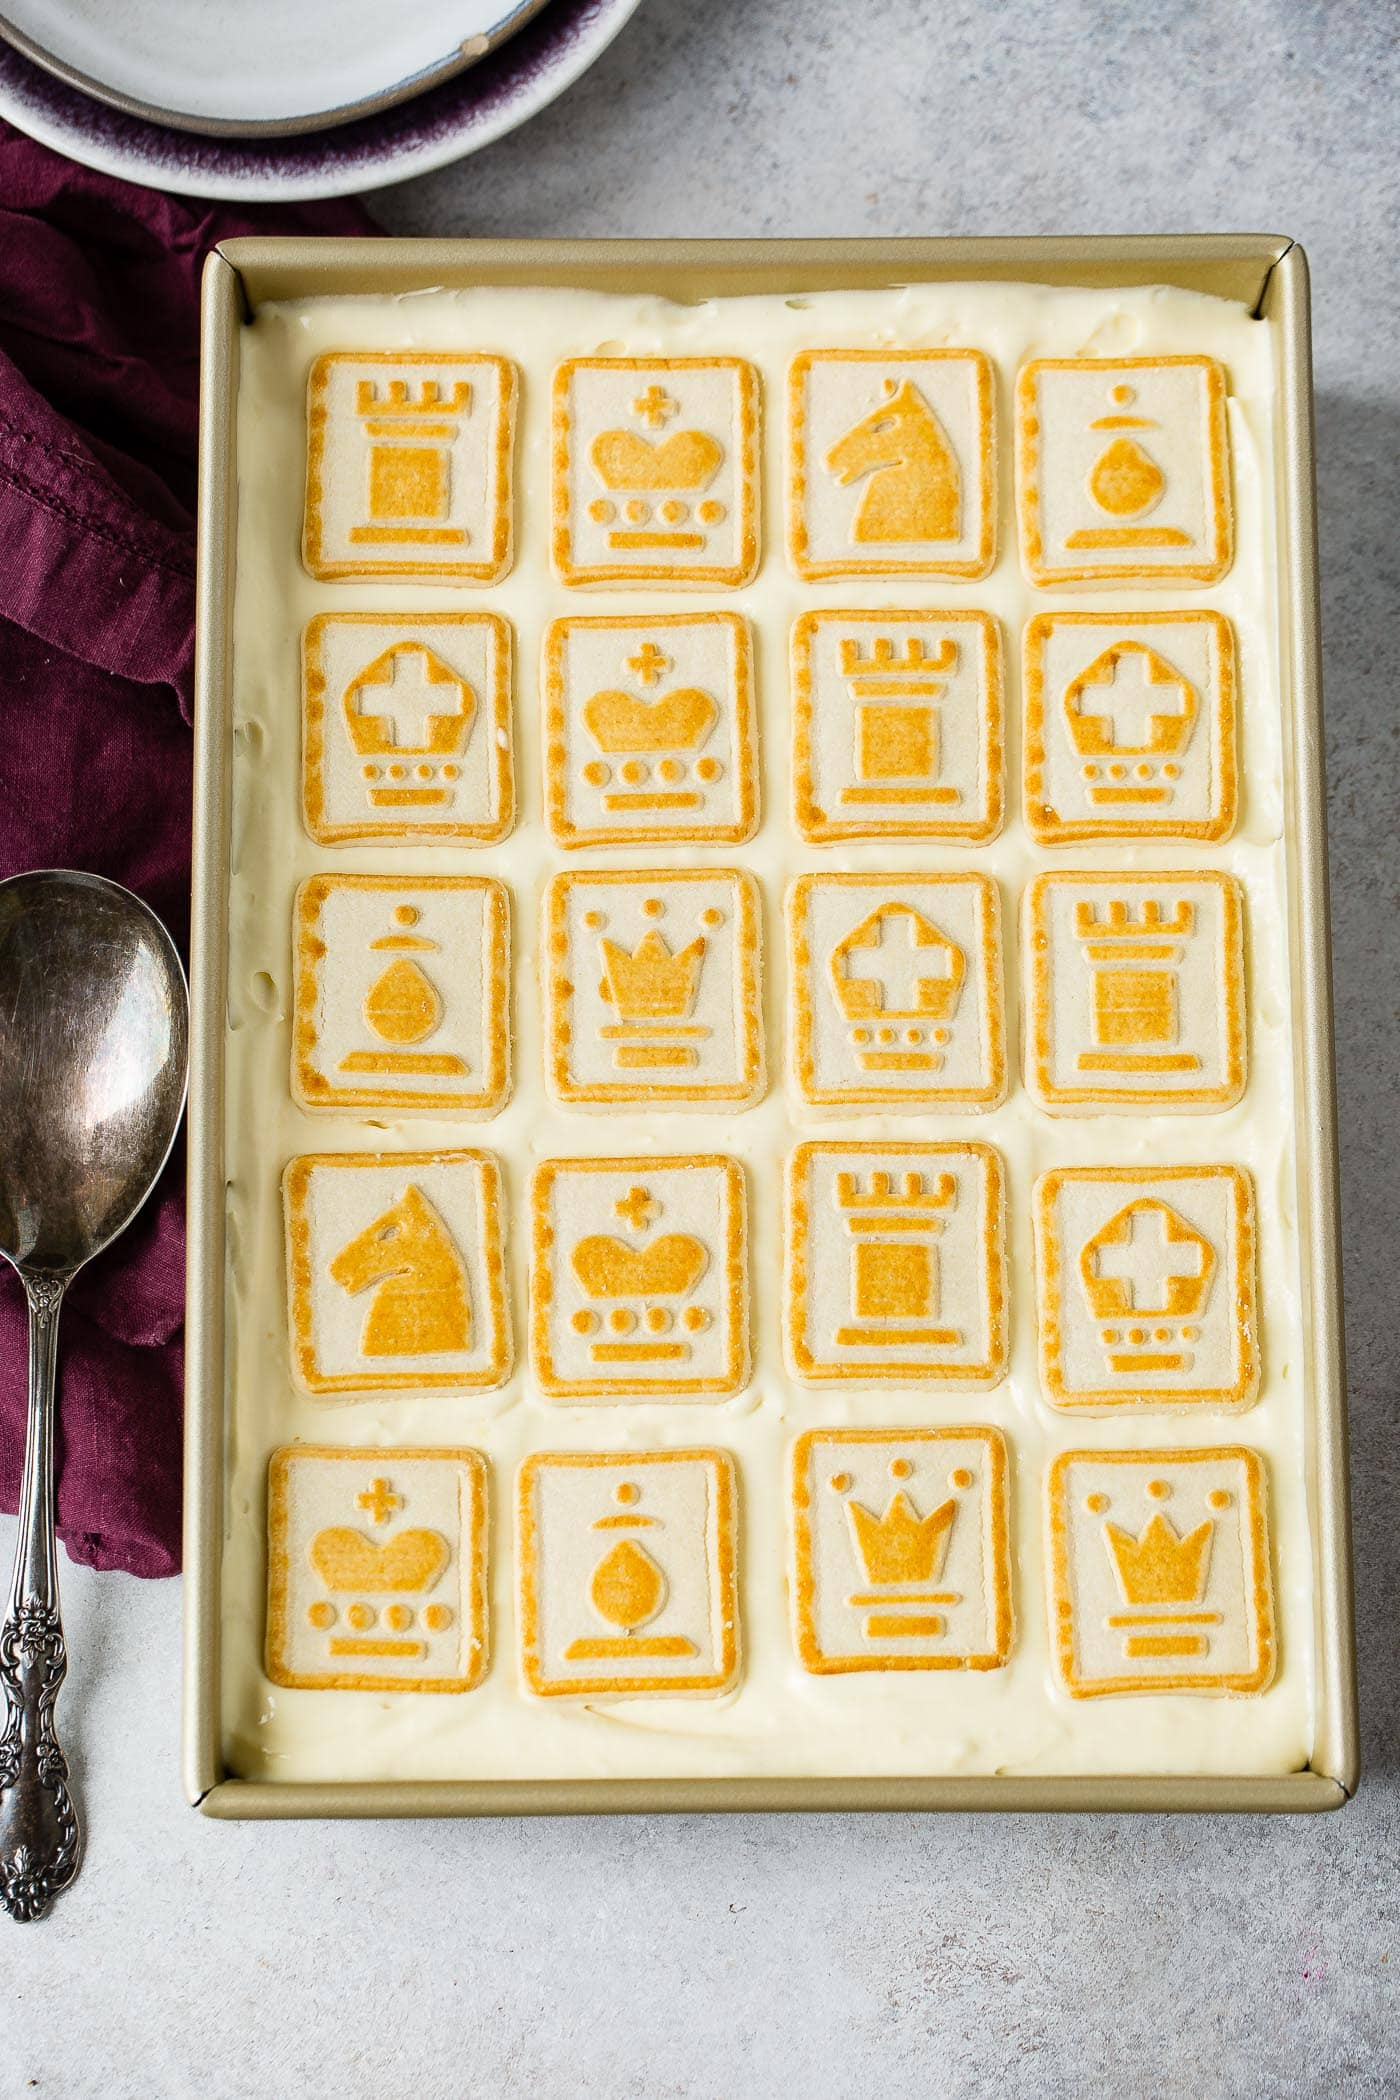 A pan of banana pudding covered with chessman cookies. The cookies are light in color and trimmed with yellow.